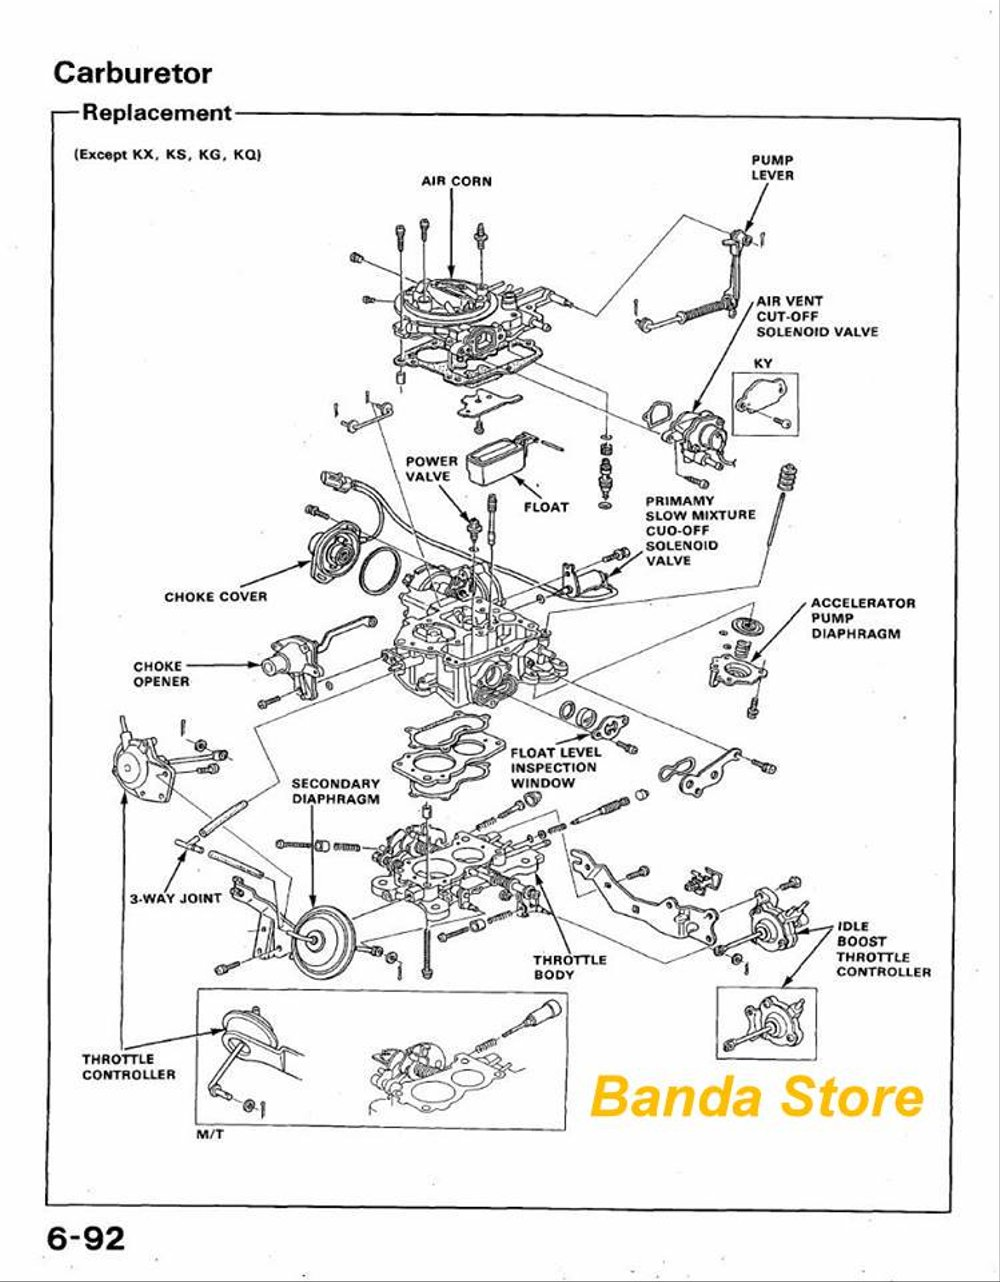 1994 Honda 300 Carburetor Diagram Wiring Schematic